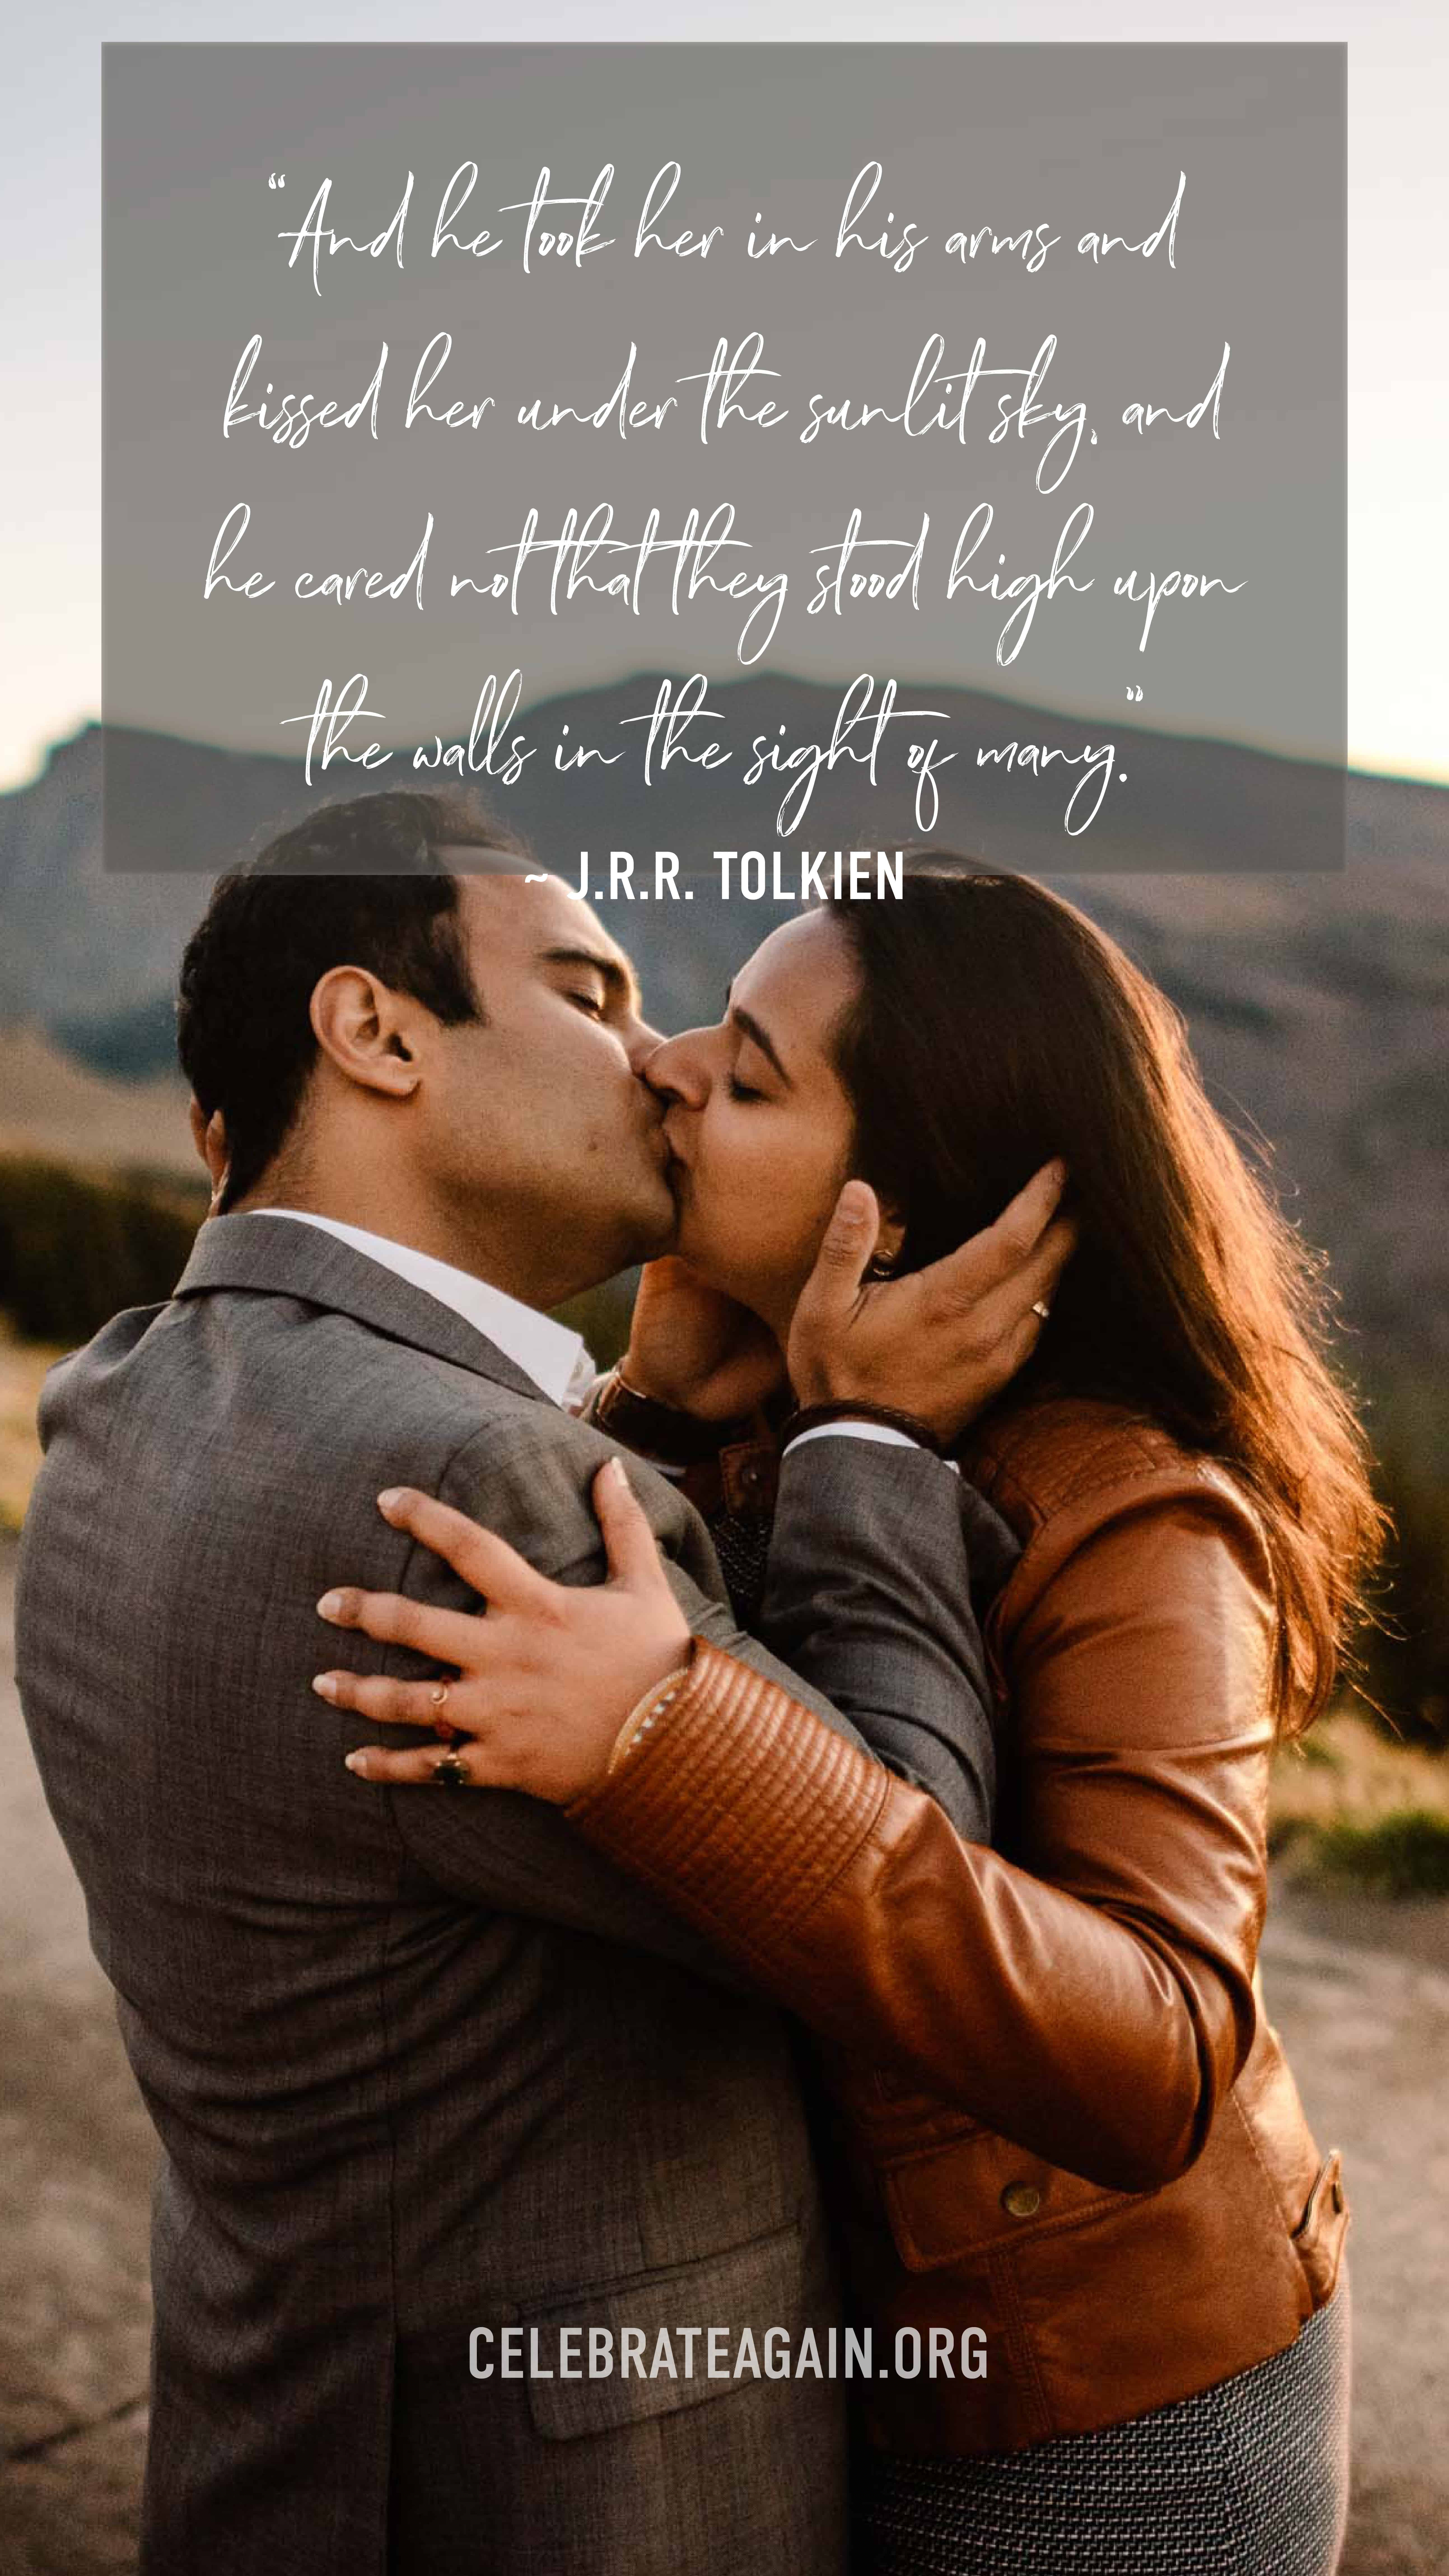 """romantic quotes for her passionate quote """"And he took her in his arms and kissed her under the sunlit sky, and he cared not that they stood high upon the walls in the sight of many."""" ― J.R.R. Tolkien couple kissing passionately image by celebrateagain.org"""